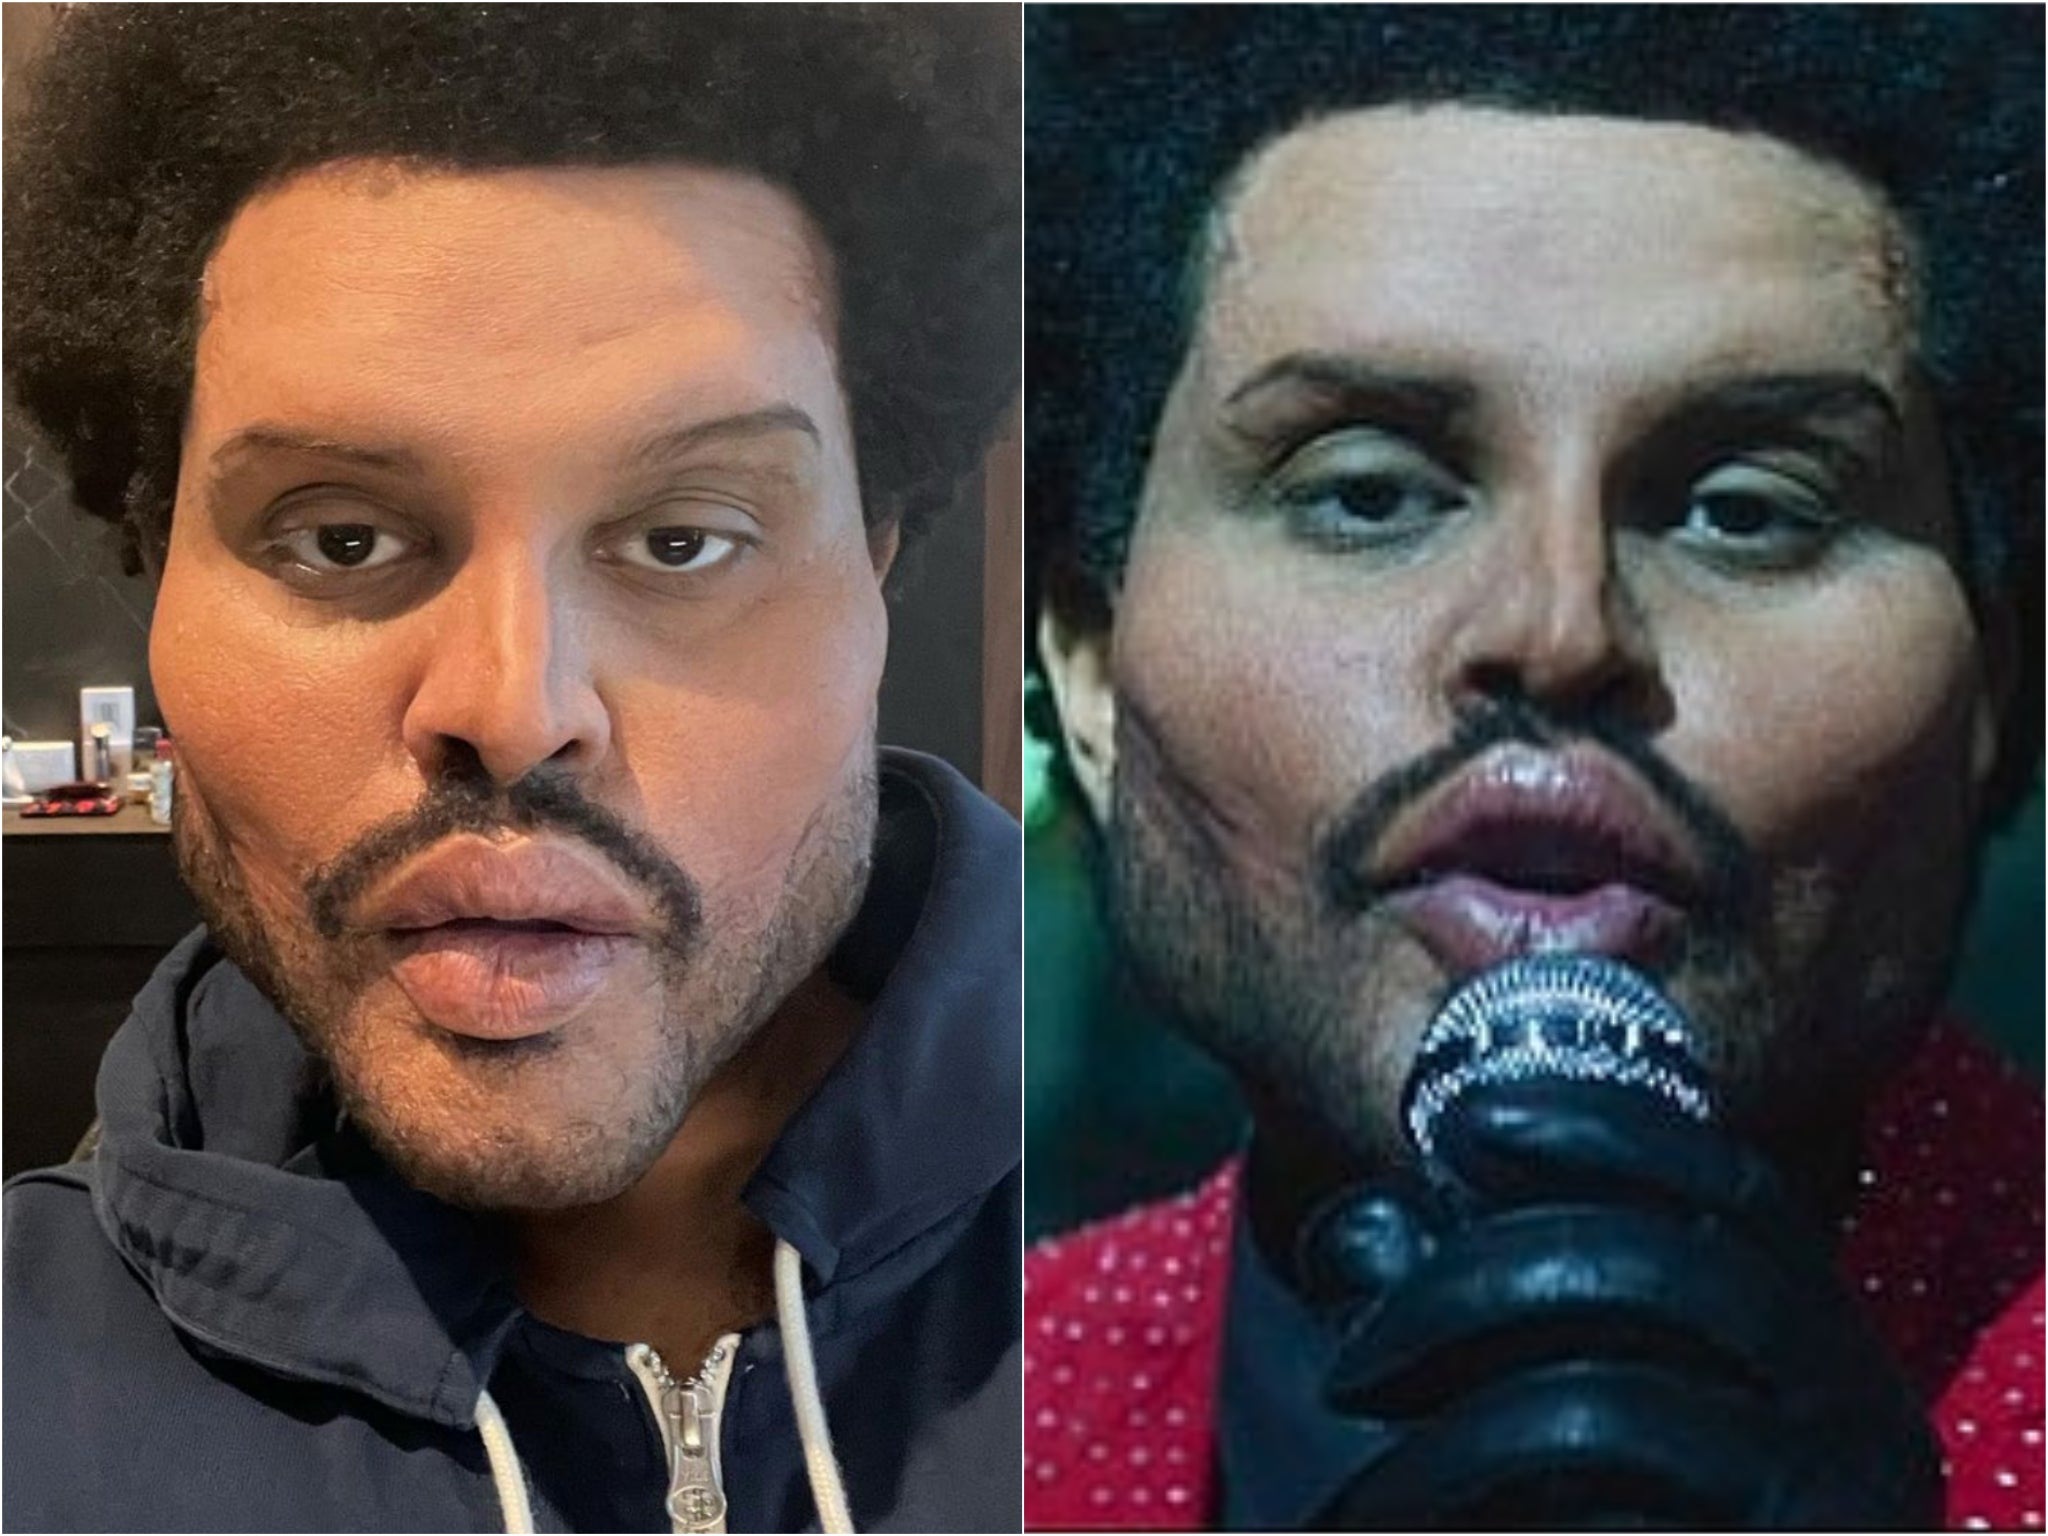 What happened to The Weeknd's face? Singer removes bandages to reveal 'creepy' plastic surgery prosthetics for new video